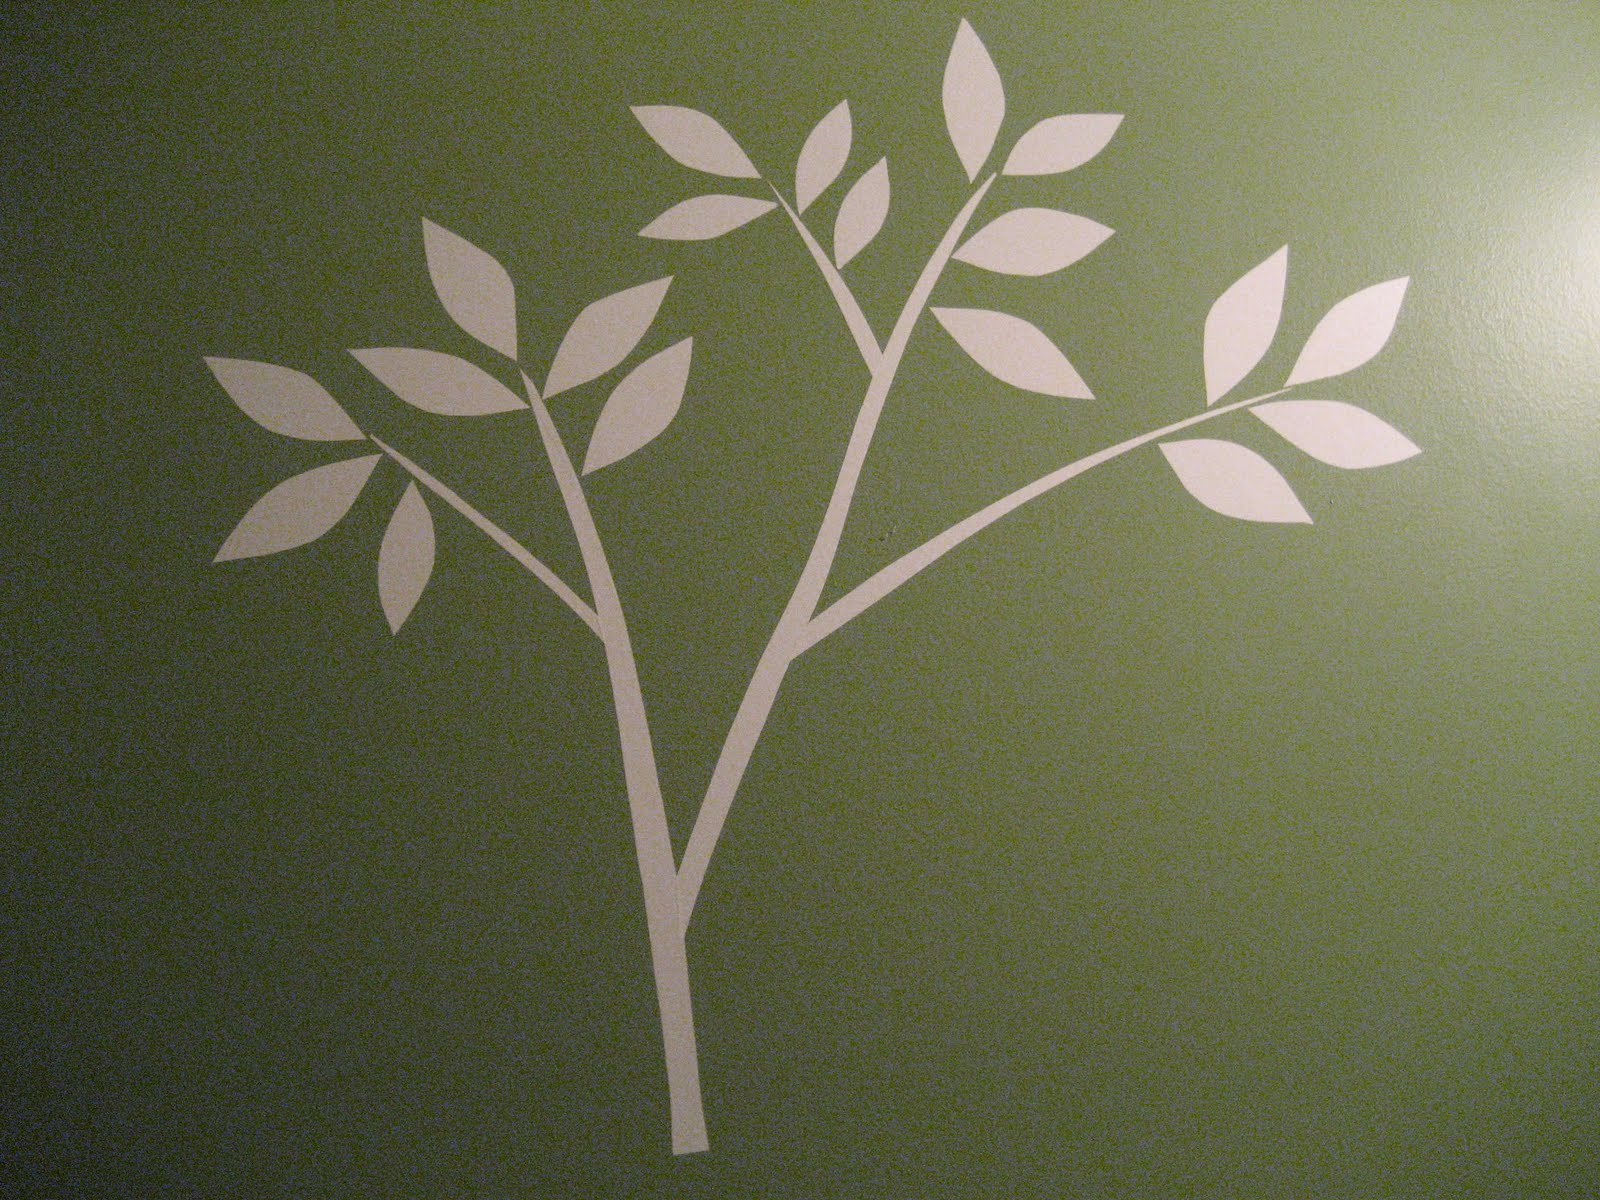 31 Diy Tutorial How To Make A Birdie Wall Decal With